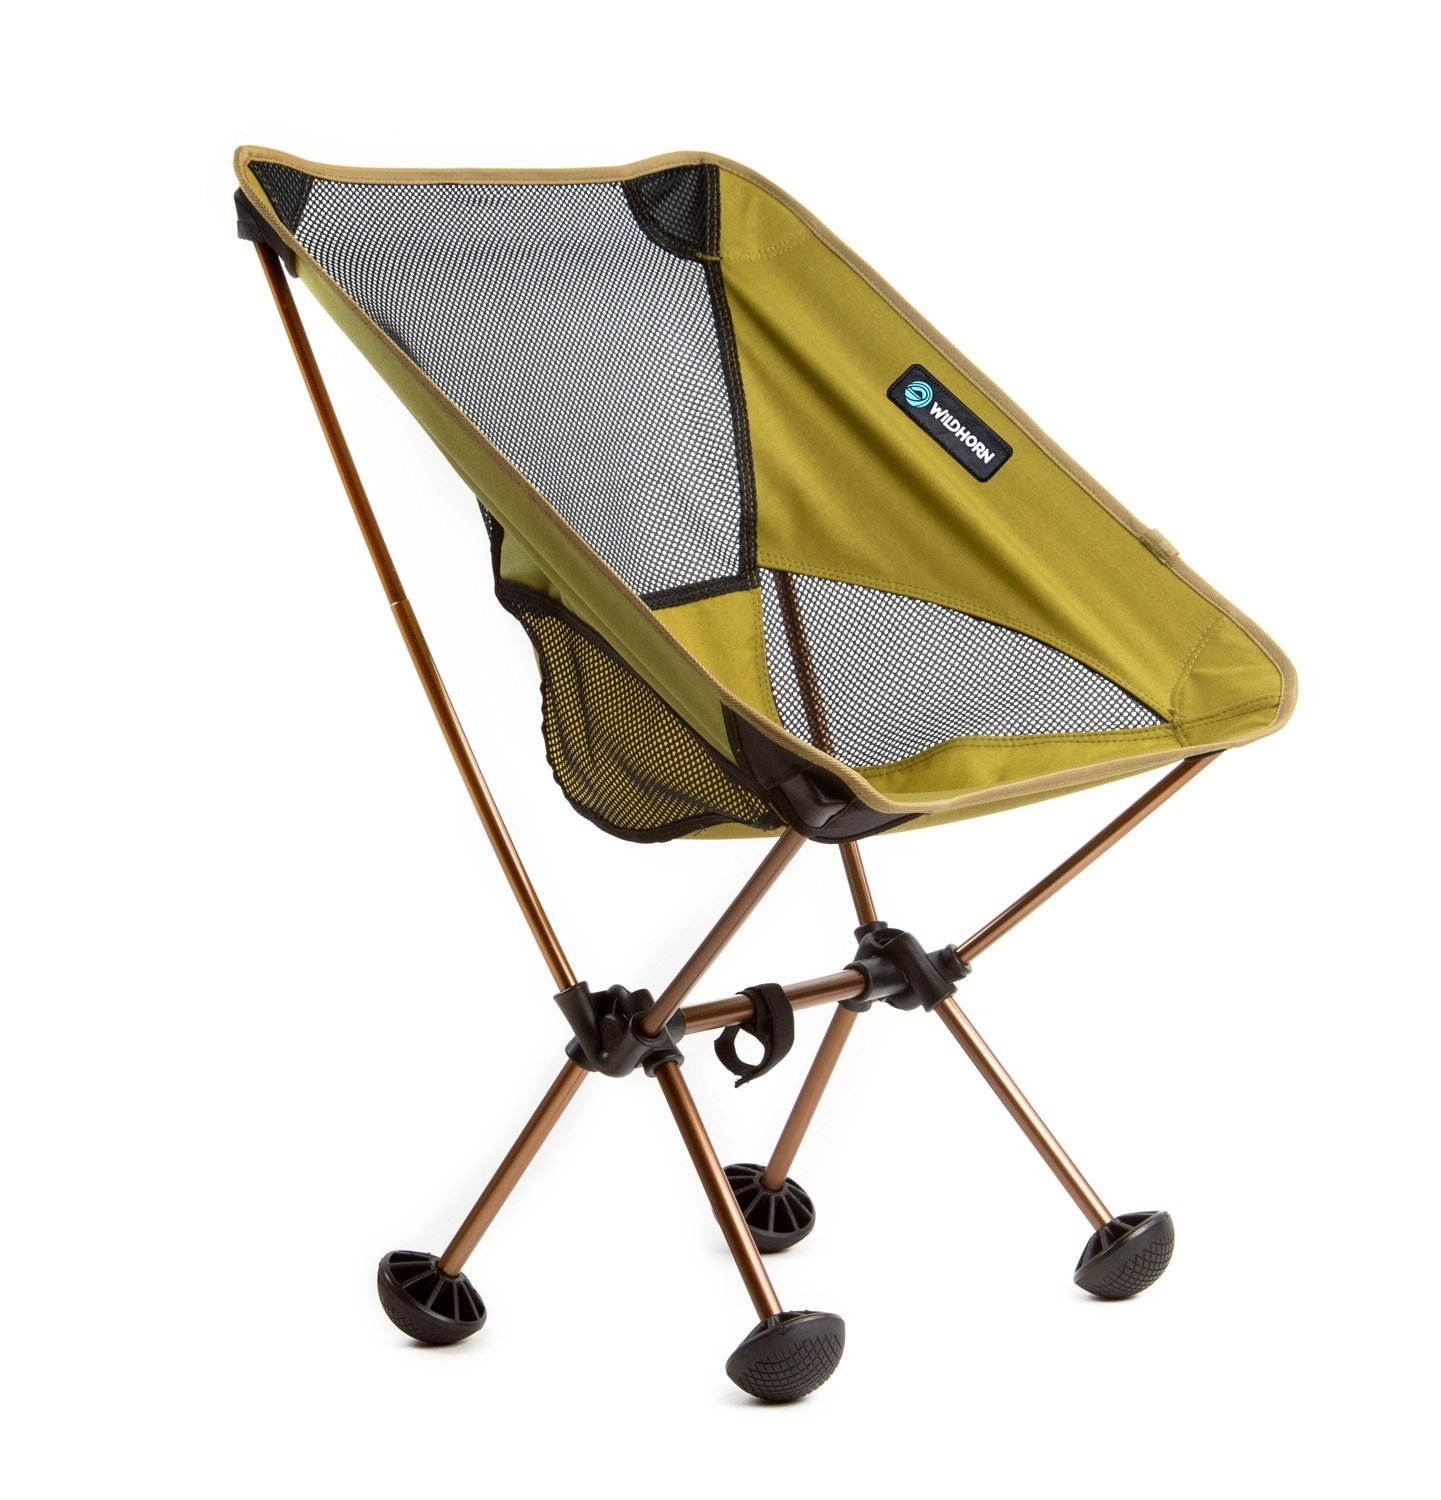 WildHorn Outfitters Terralite Portable Camp/Beach Chair (Supports 350 lbs) with TerraGrip Feet (並行輸入品) B07D7GKSPX One Size|Olive Olive One Size